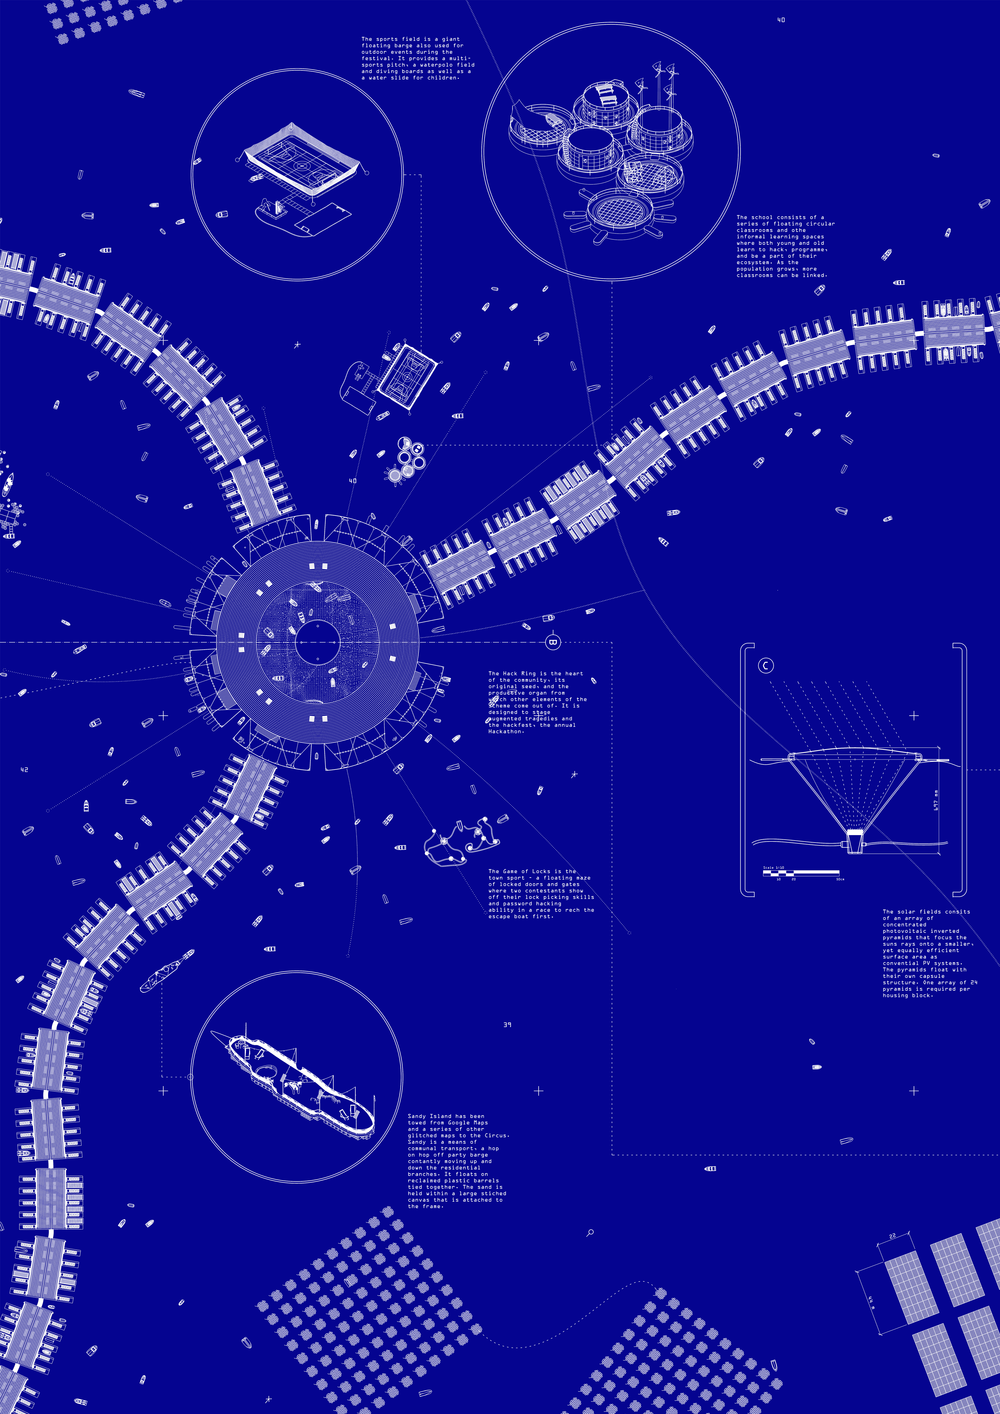 Blueprint for a Hack Circus (detail)